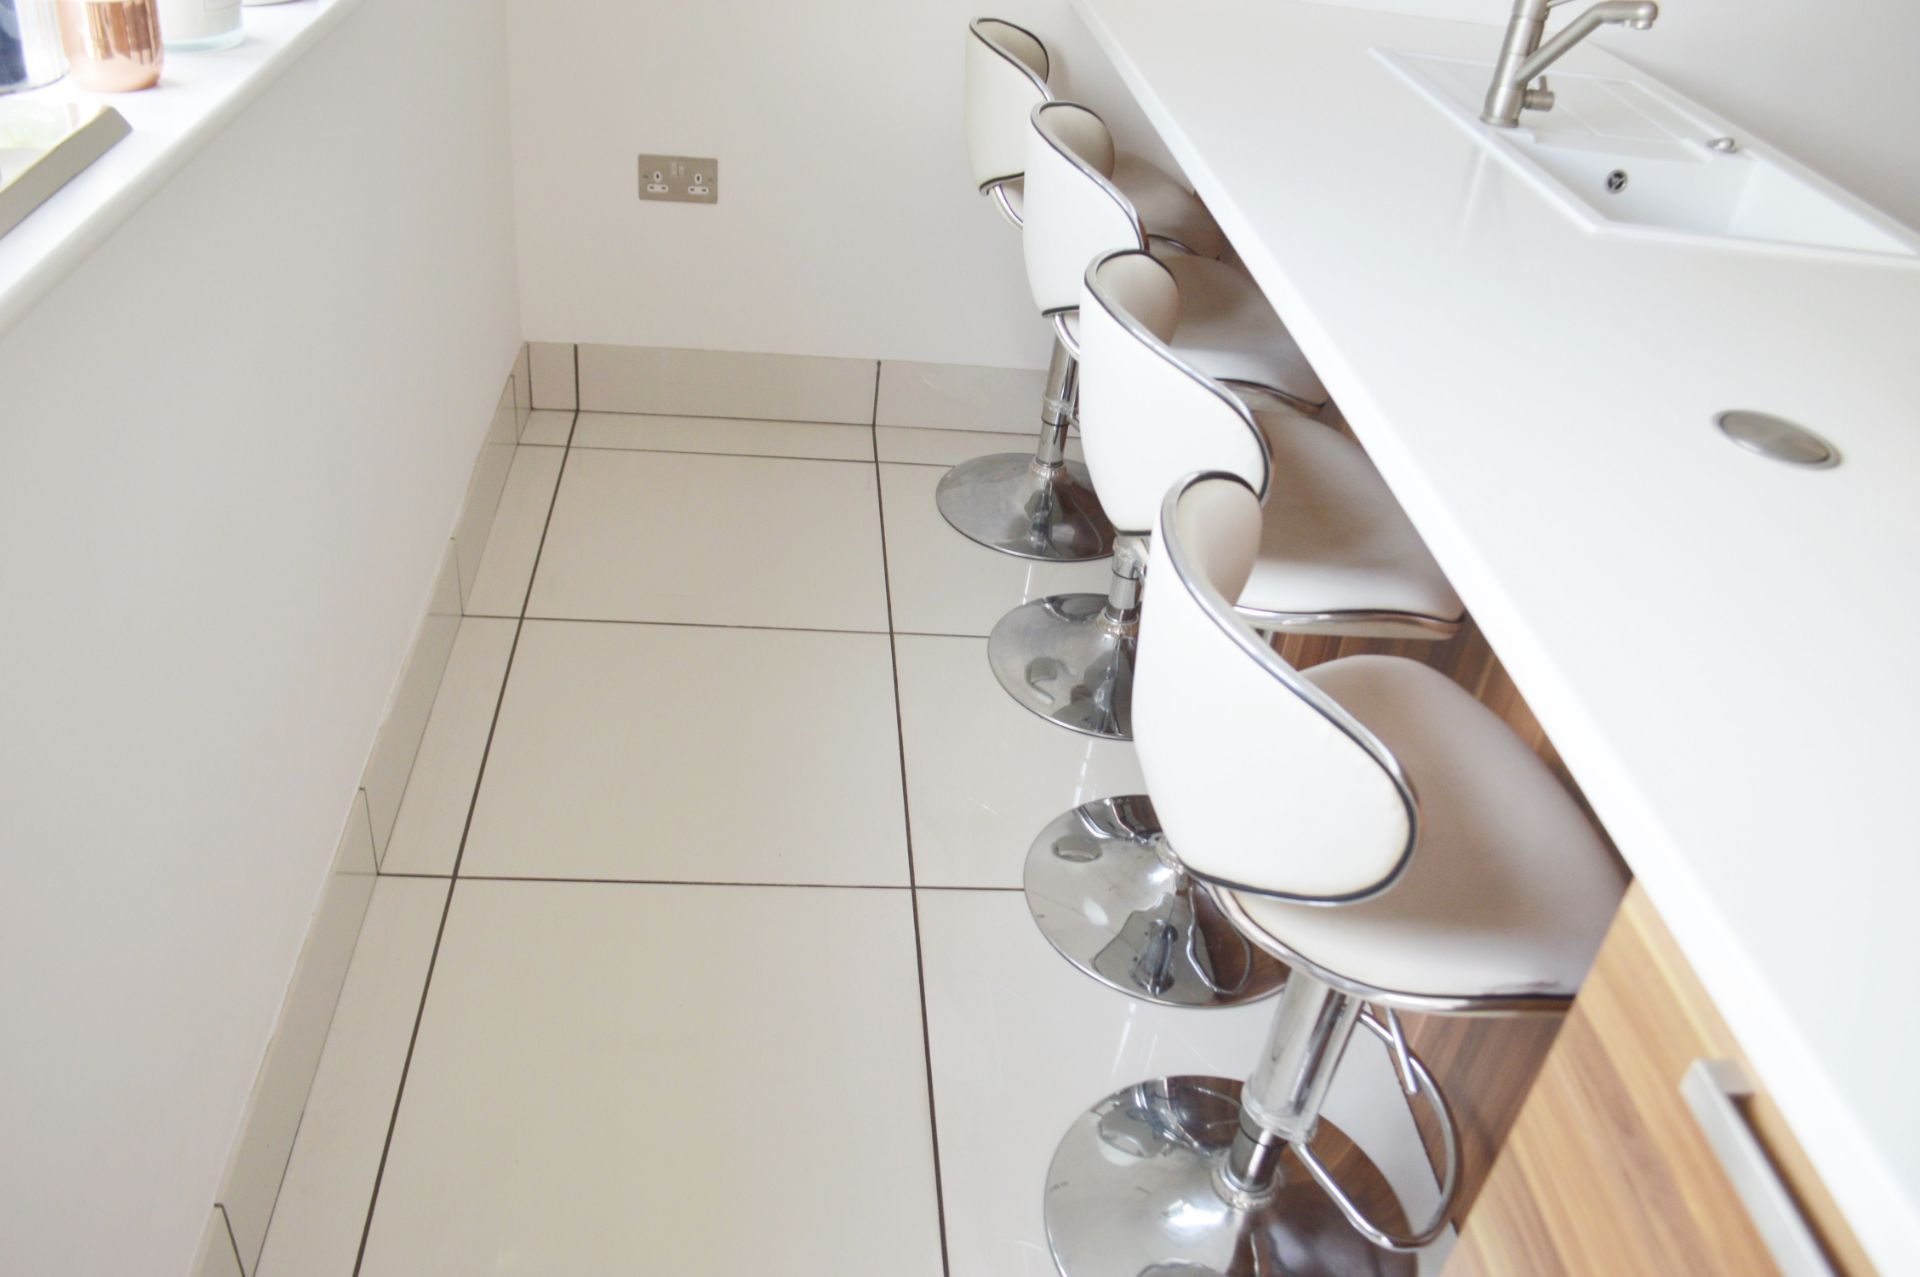 4 x Deluxe Modern White Bar Stools -CL685 - Location: Blackburn BB6 - NO VAT On Hammer This Lot - Image 2 of 4